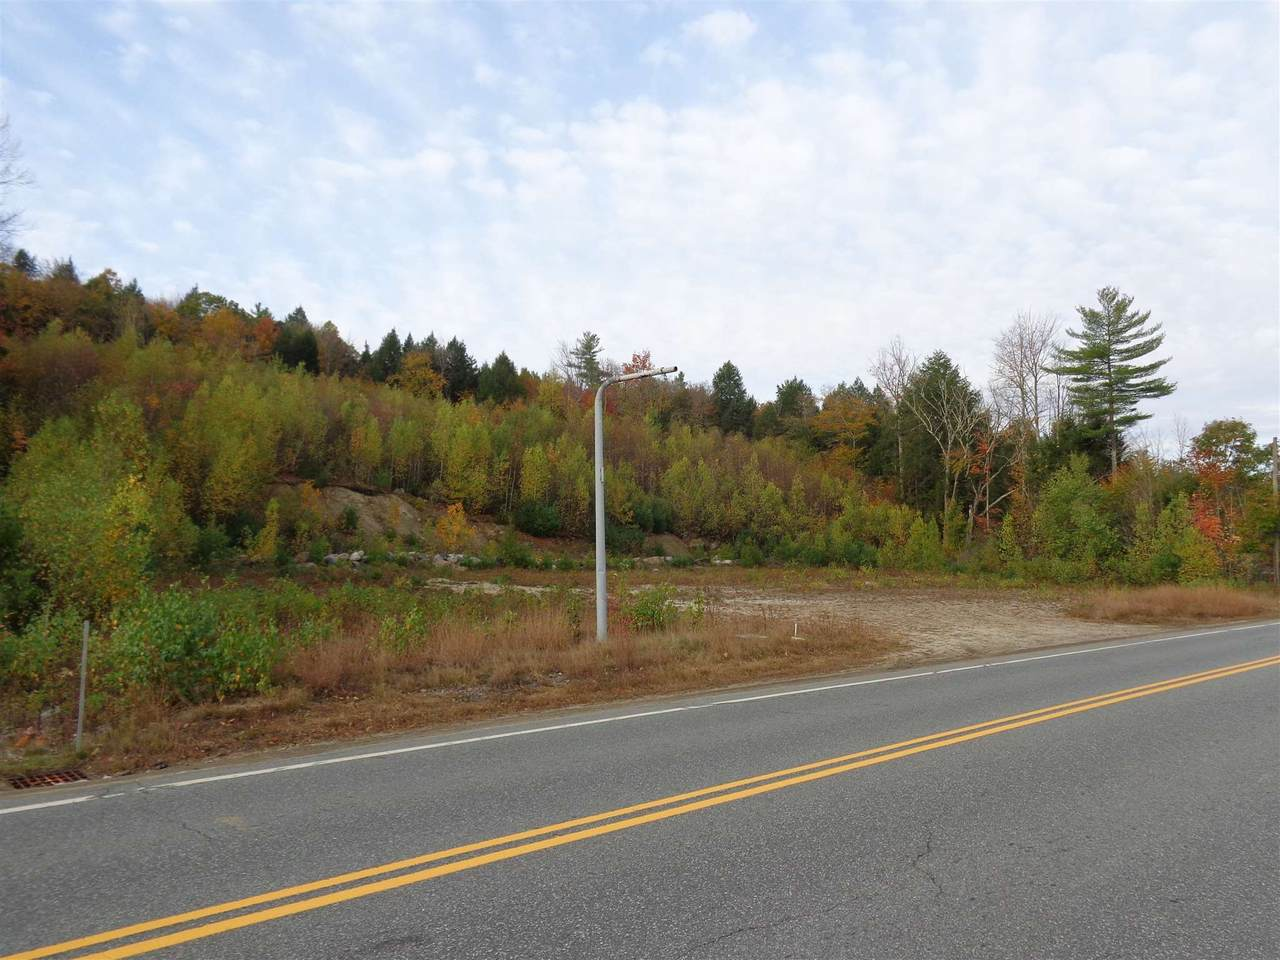 100 Nh Route 104 - Photo 1